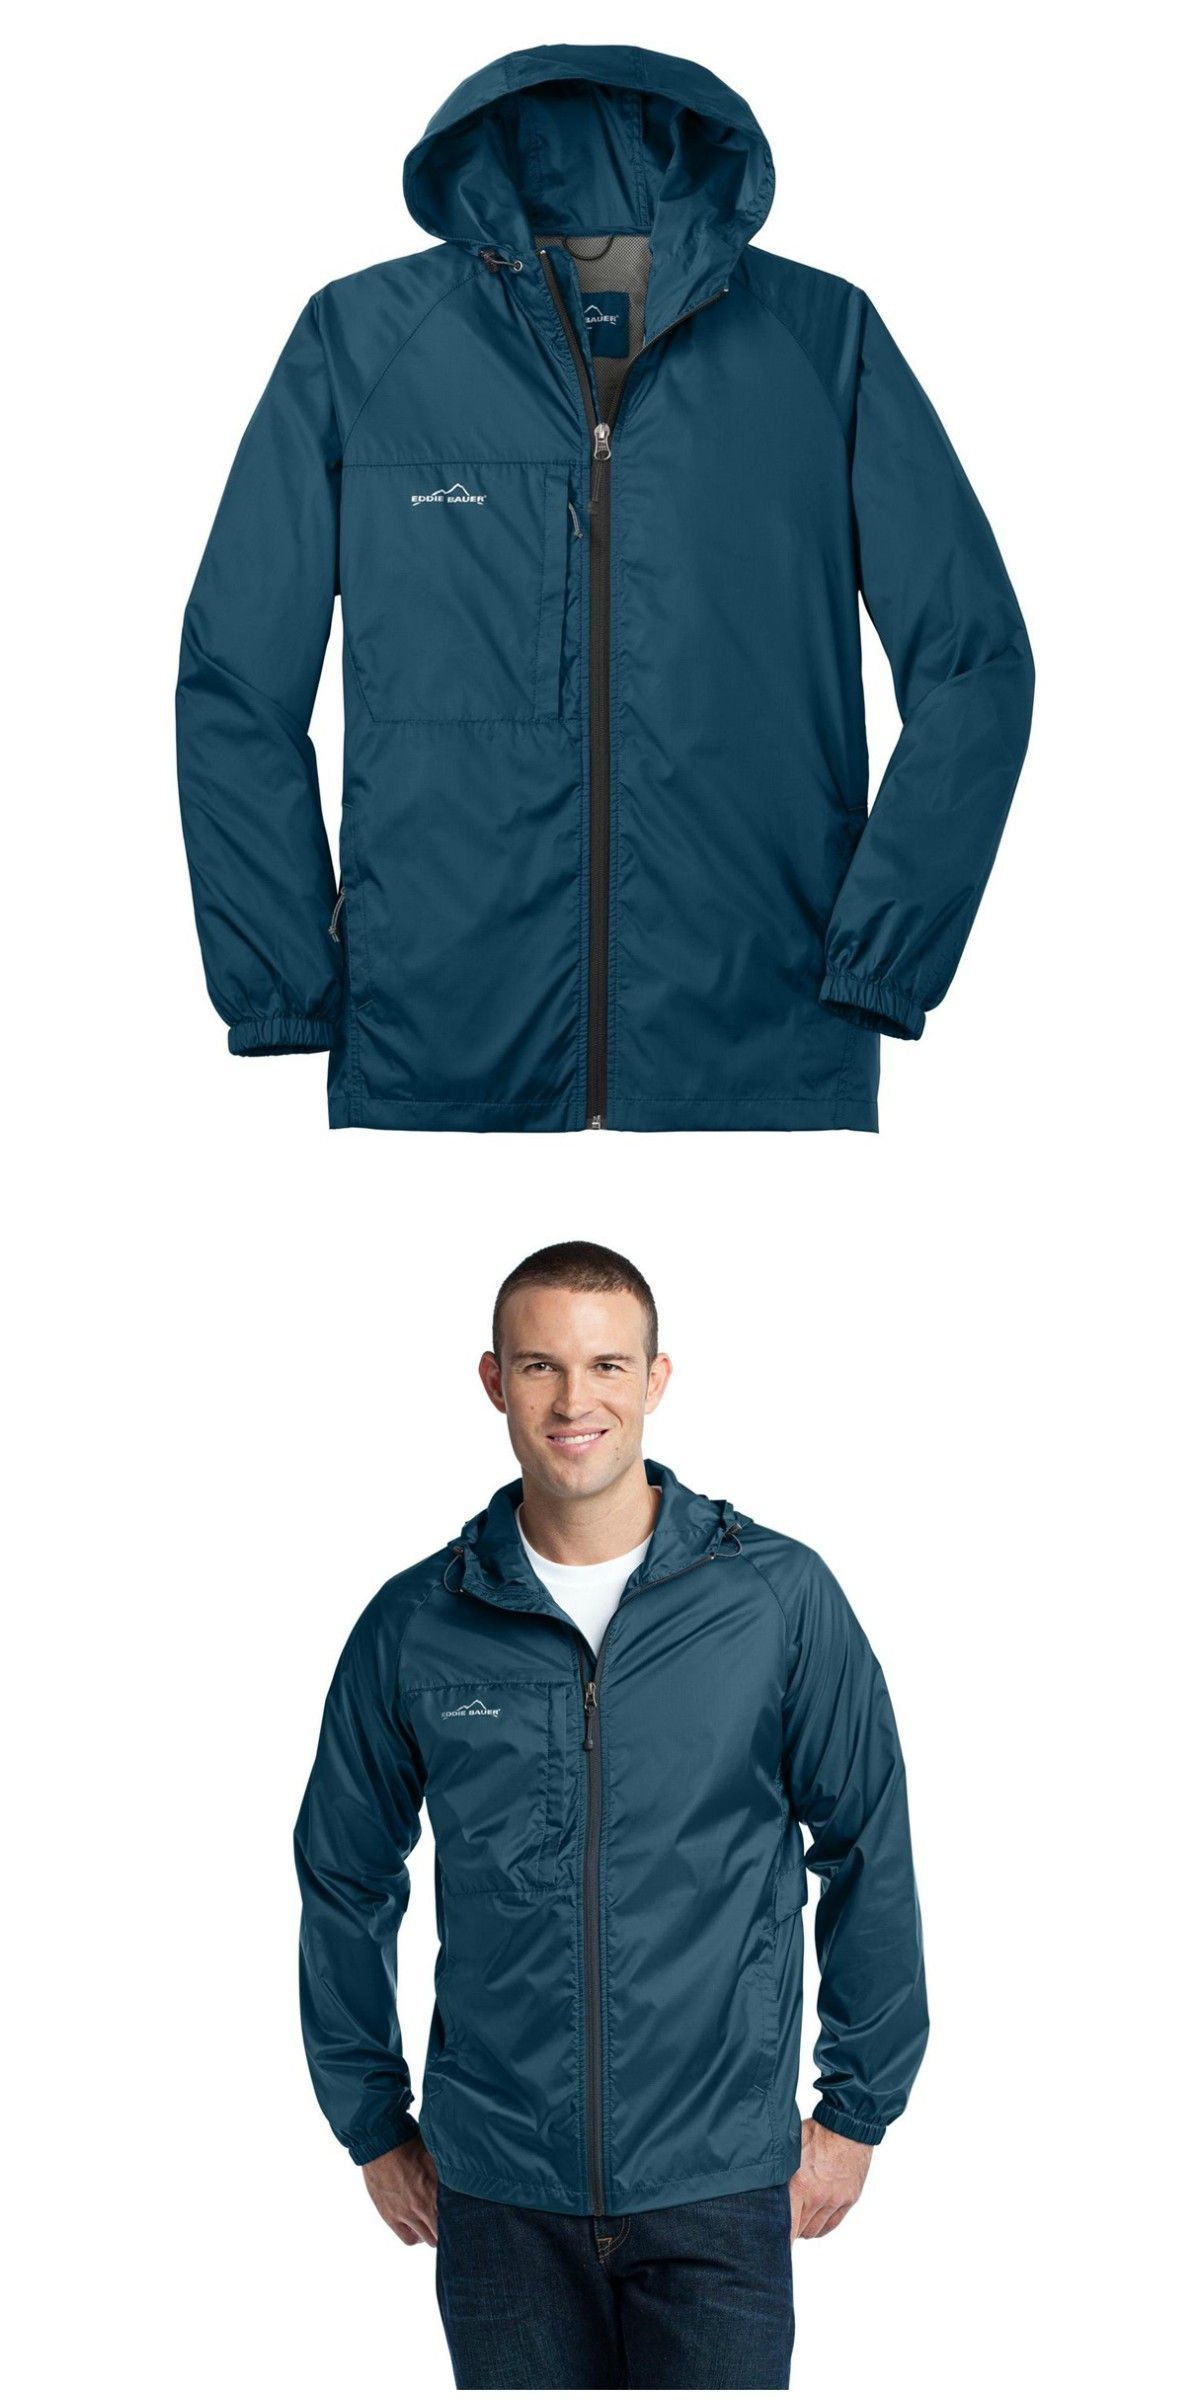 Eddie Bauer EB500 Packable Wind Jacket Adriatic Blue